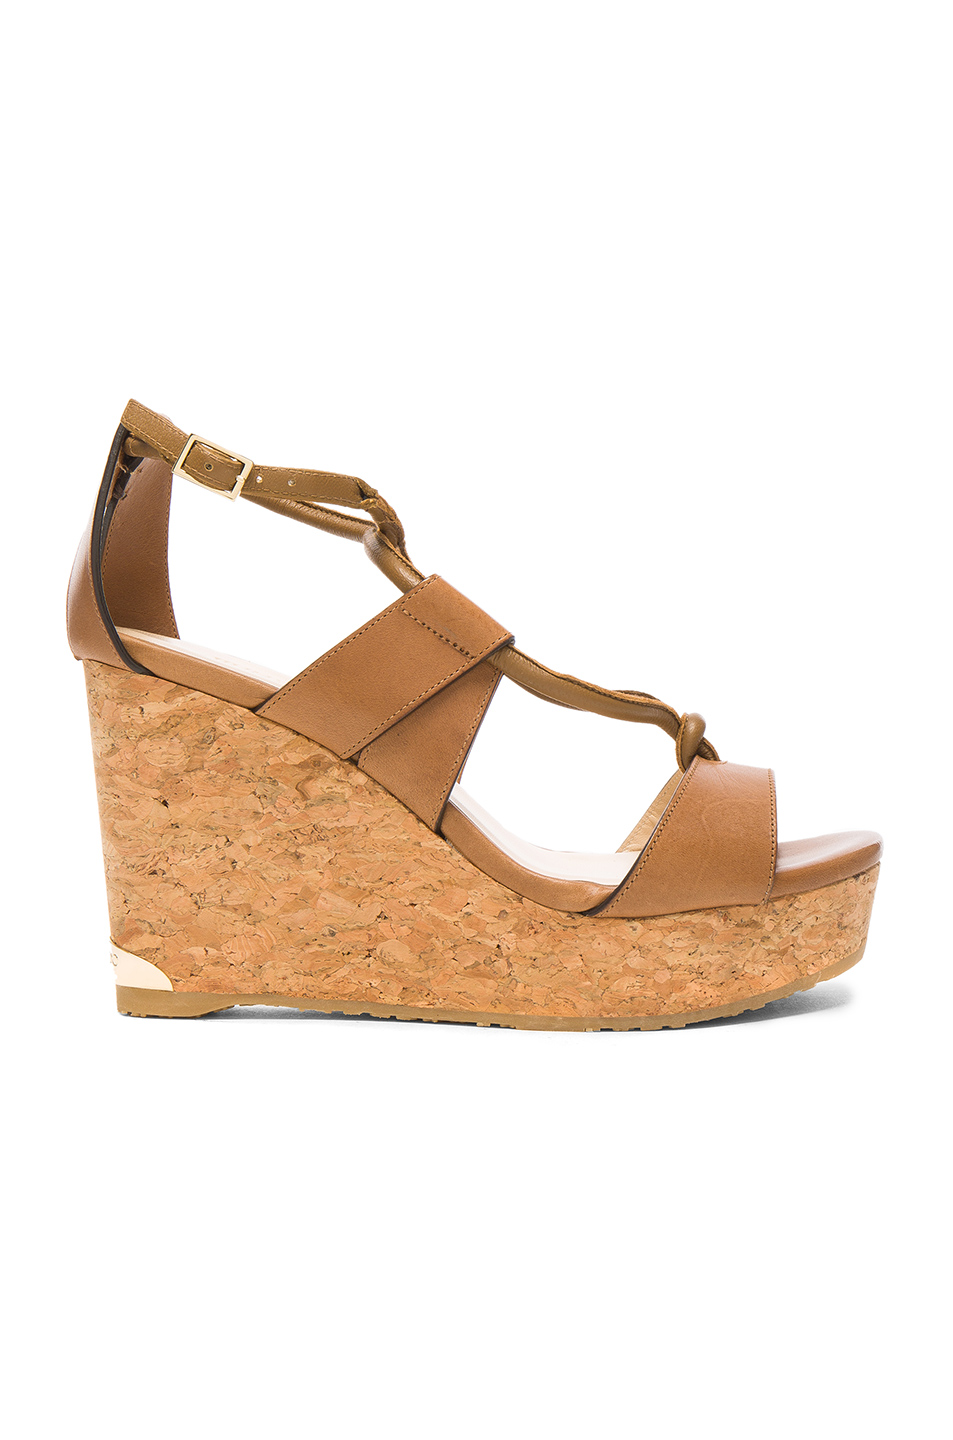 Jimmy Choo Leather Nelson Wedges in Brown